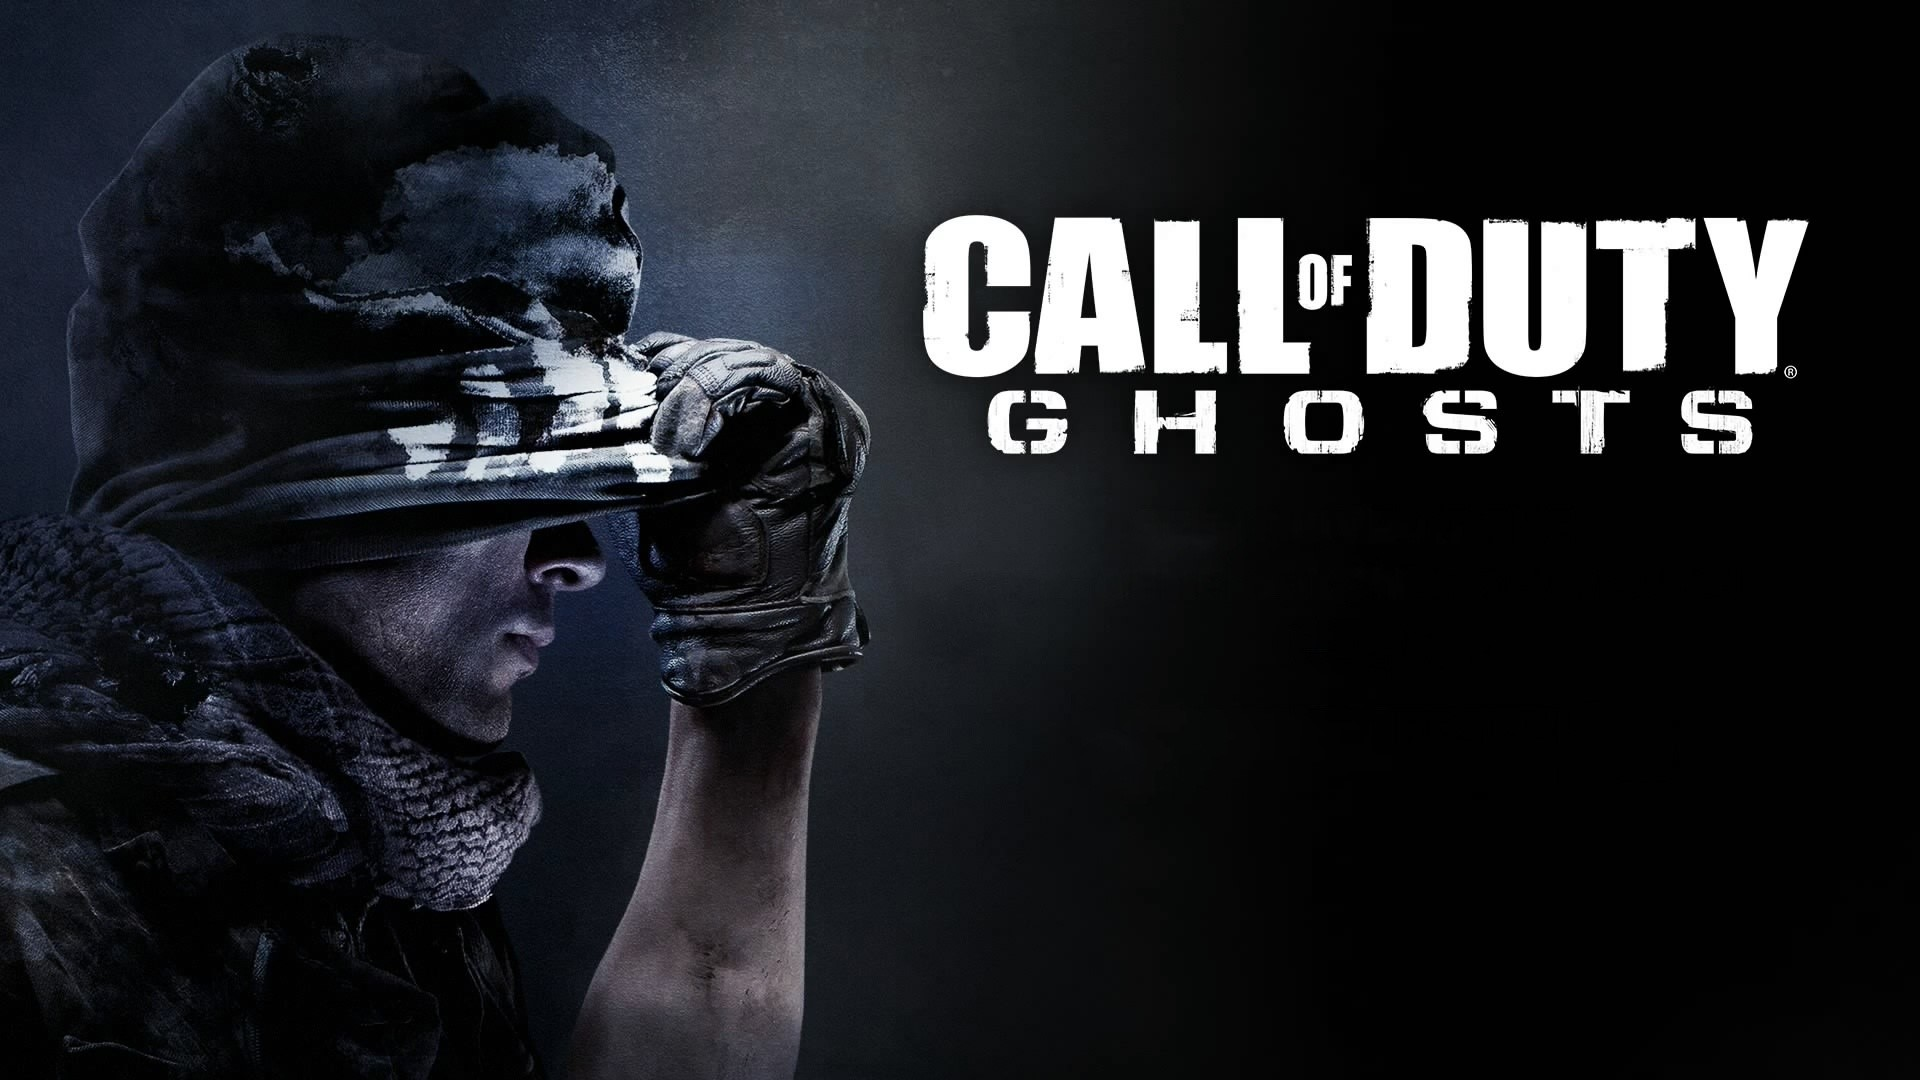 Fondos de pantalla Juego Call of duty Ghosts